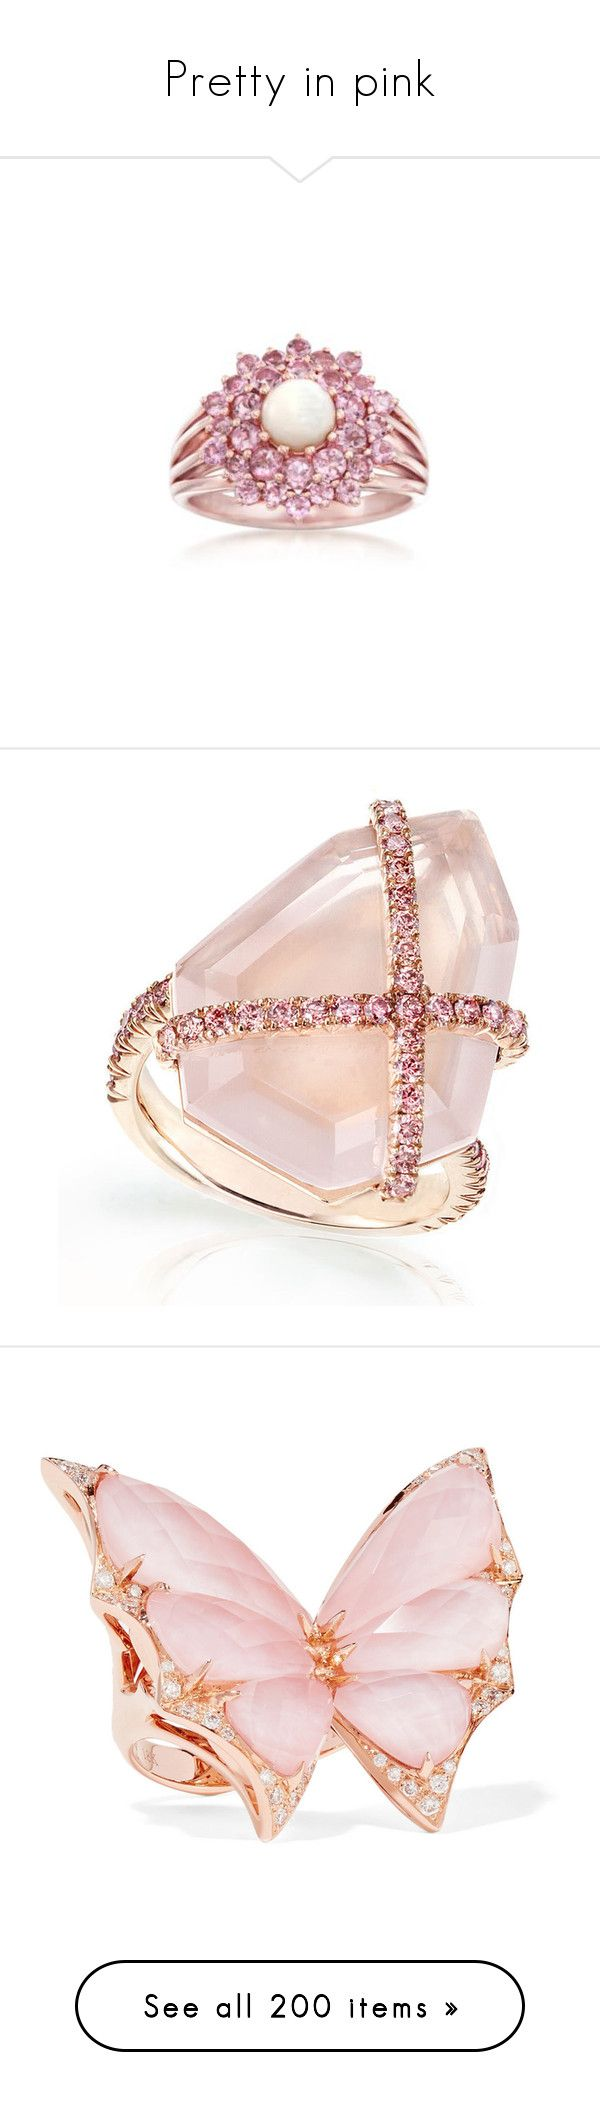 """""""Pretty in pink"""" by sasane ❤ liked on Polyvore featuring jewelry, rings, ross simons rings, pink tourmaline ring, gold opal jewelry, opal jewelry, round ring, diamond rings, diamond jewellery and rose quartz jewelry"""